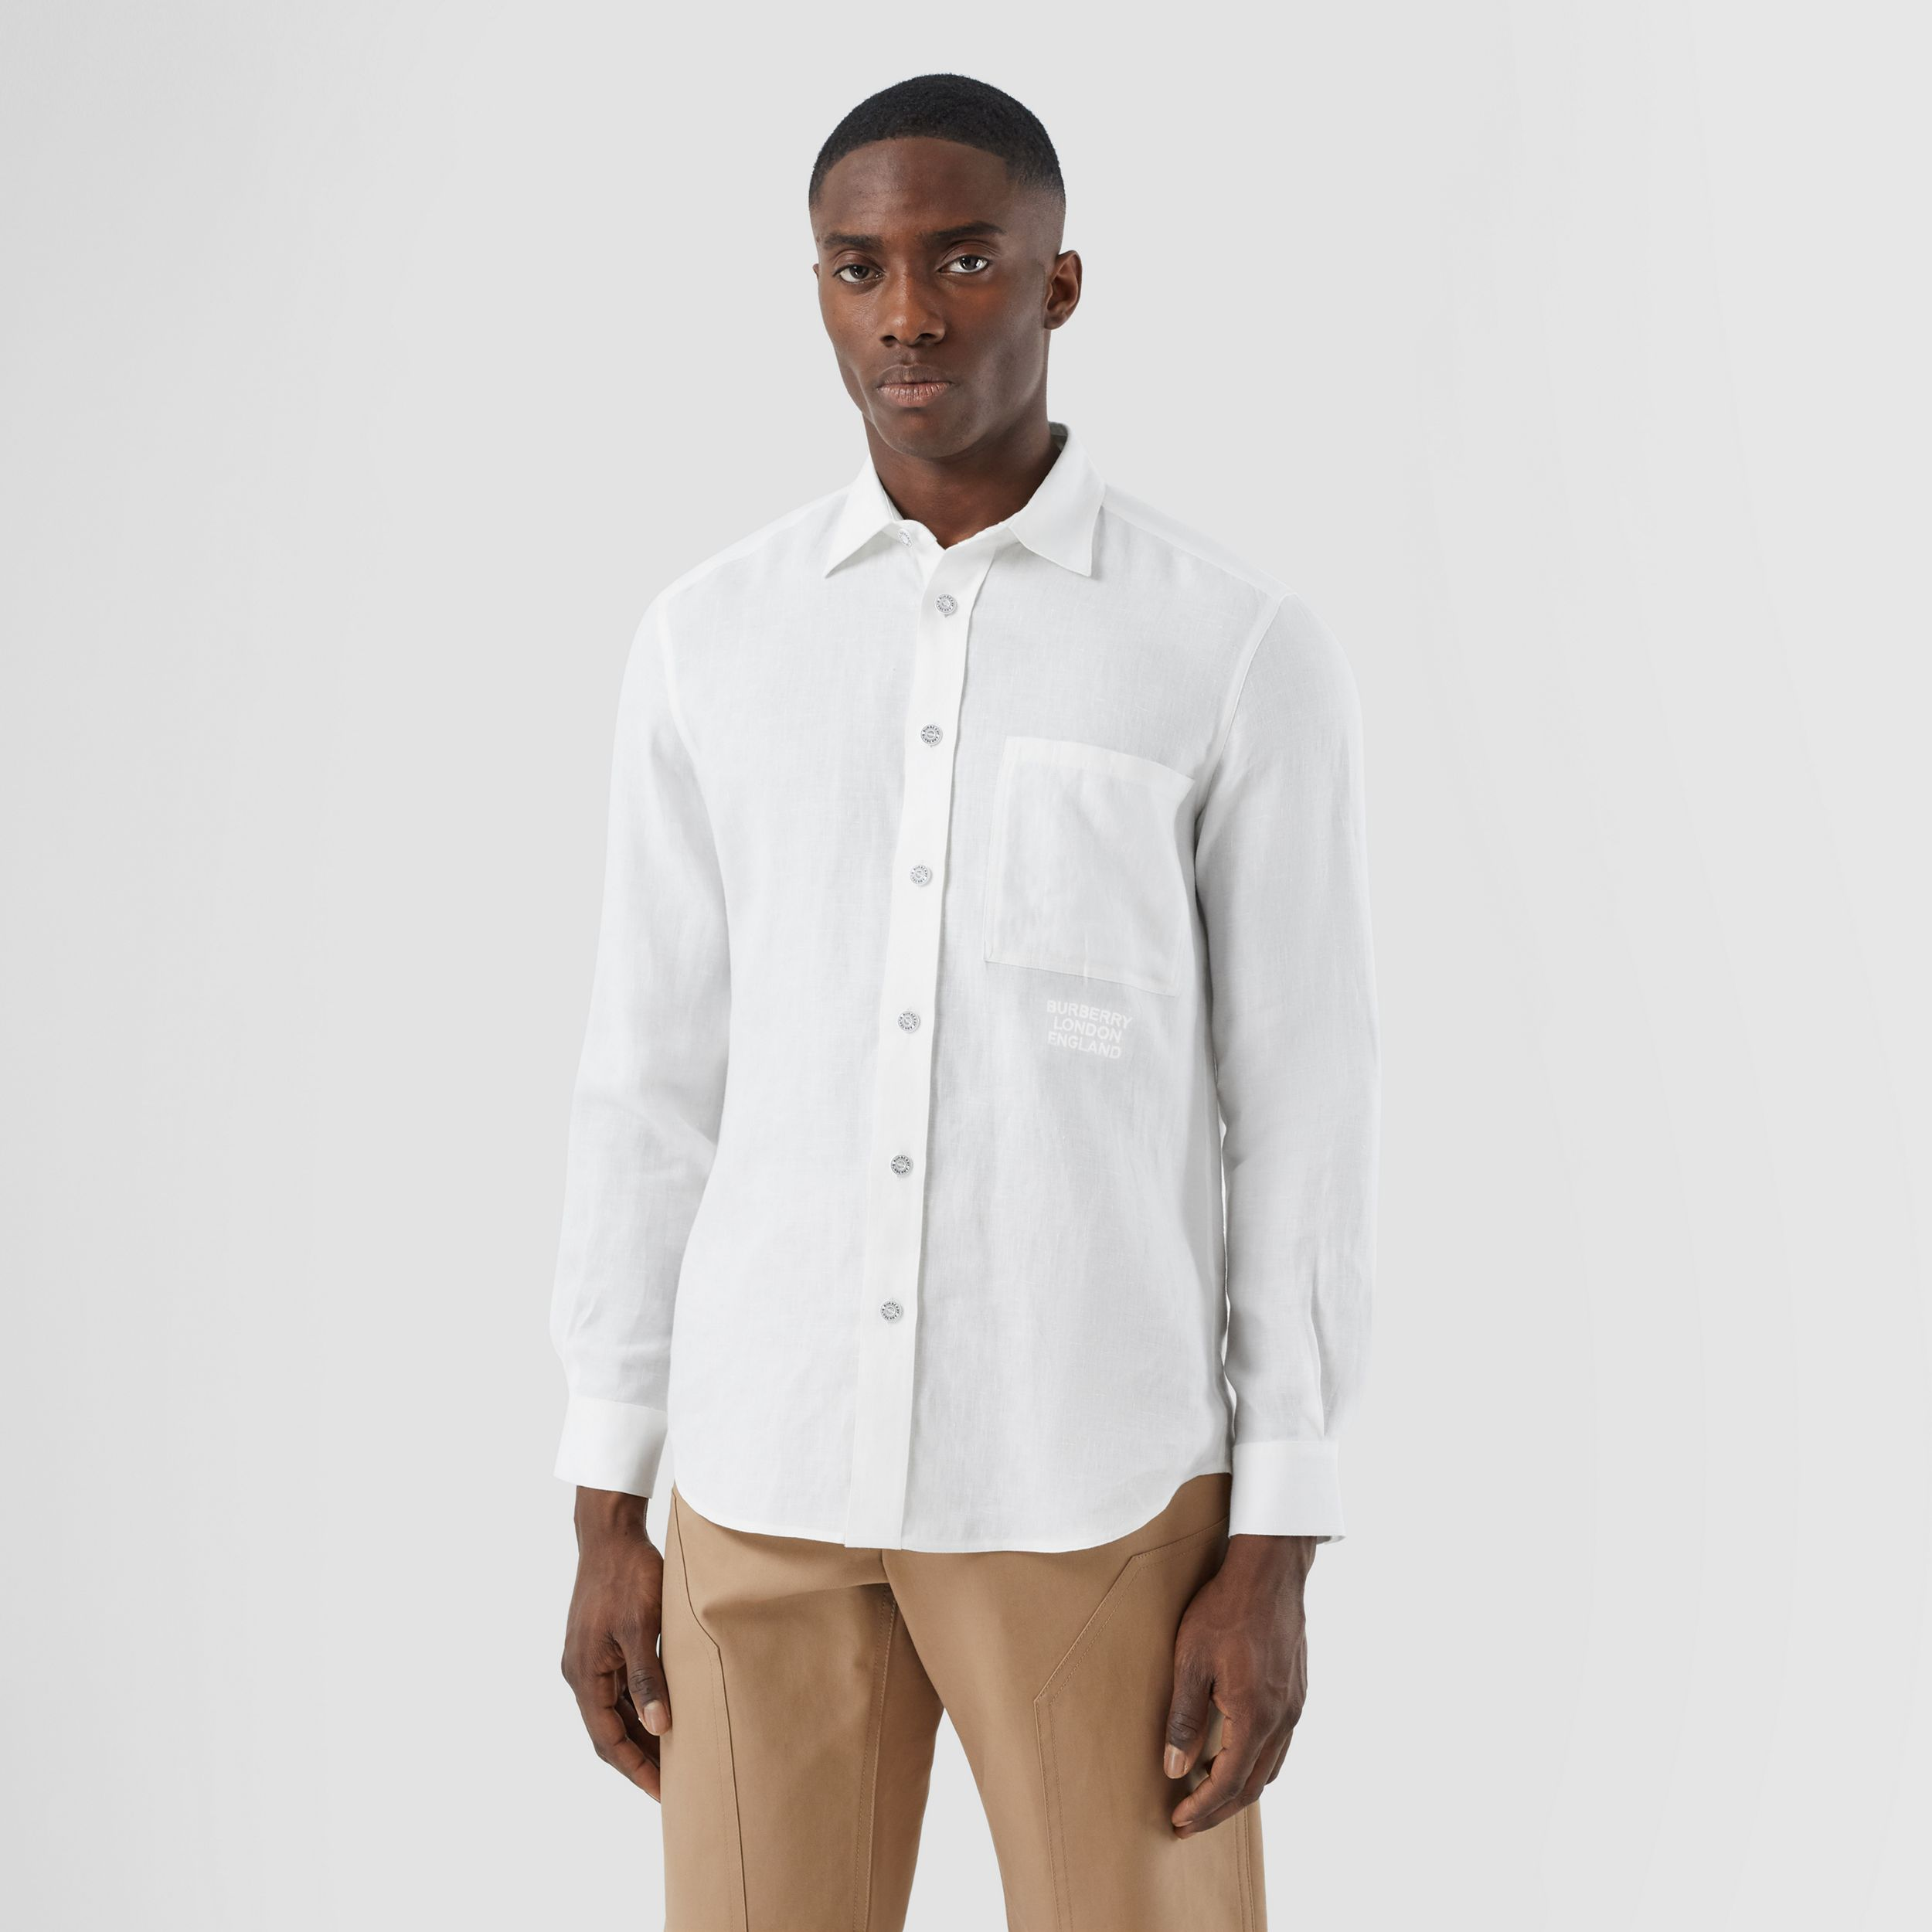 Embroidered Logo Linen Shirt in White - Men | Burberry - 1